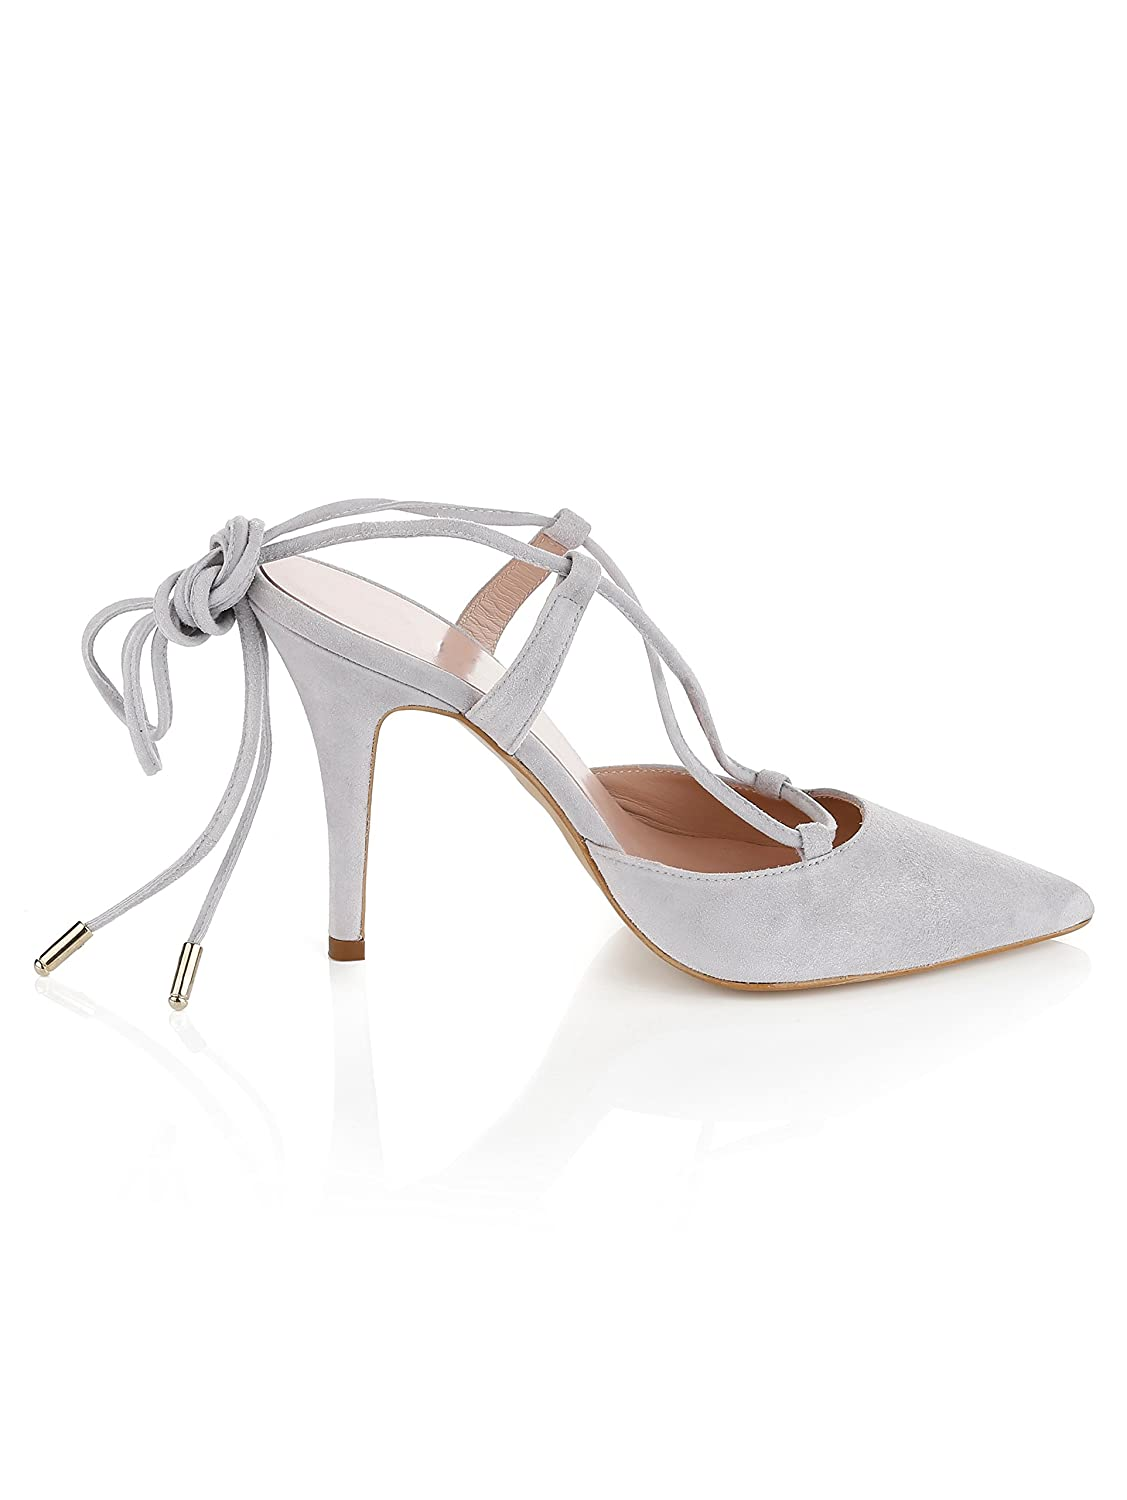 Alba Moda in Pumps in Moda Spitzer Form  Grau cf5952